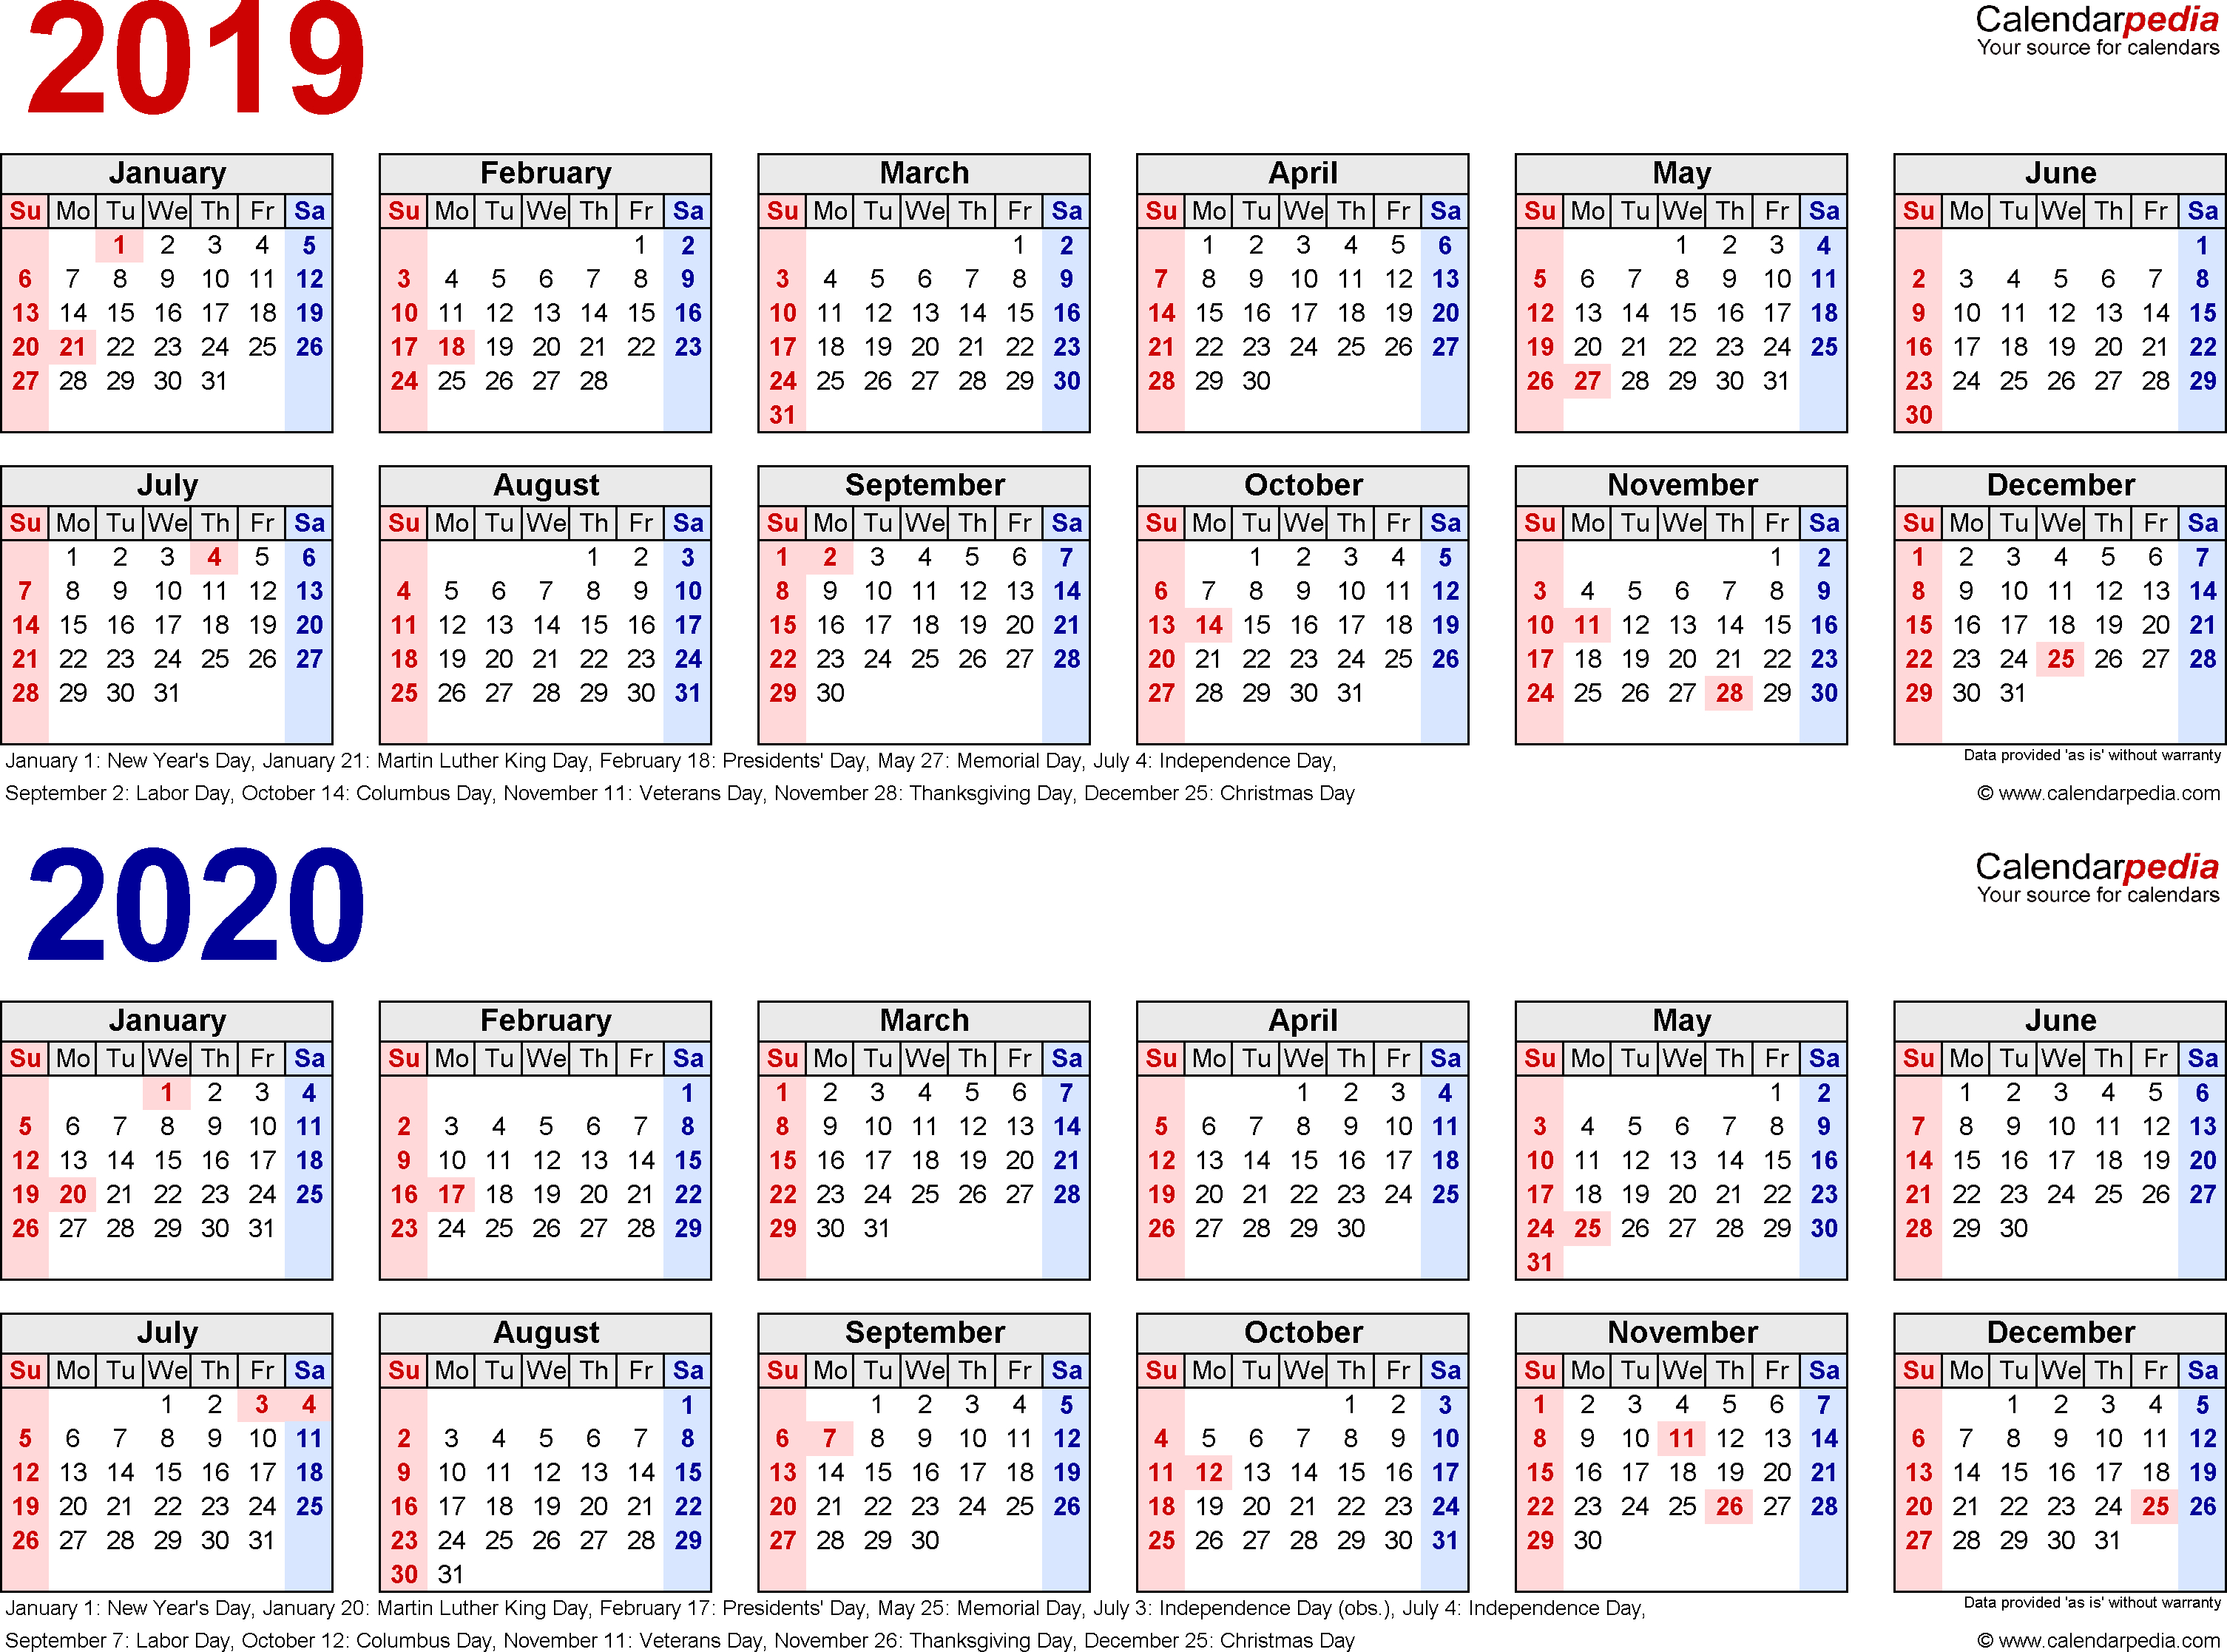 2019-2020 Calendar - Free Printable Two-Year Excel Calendars for Free Printable 2019-2020 Calendar With Editing